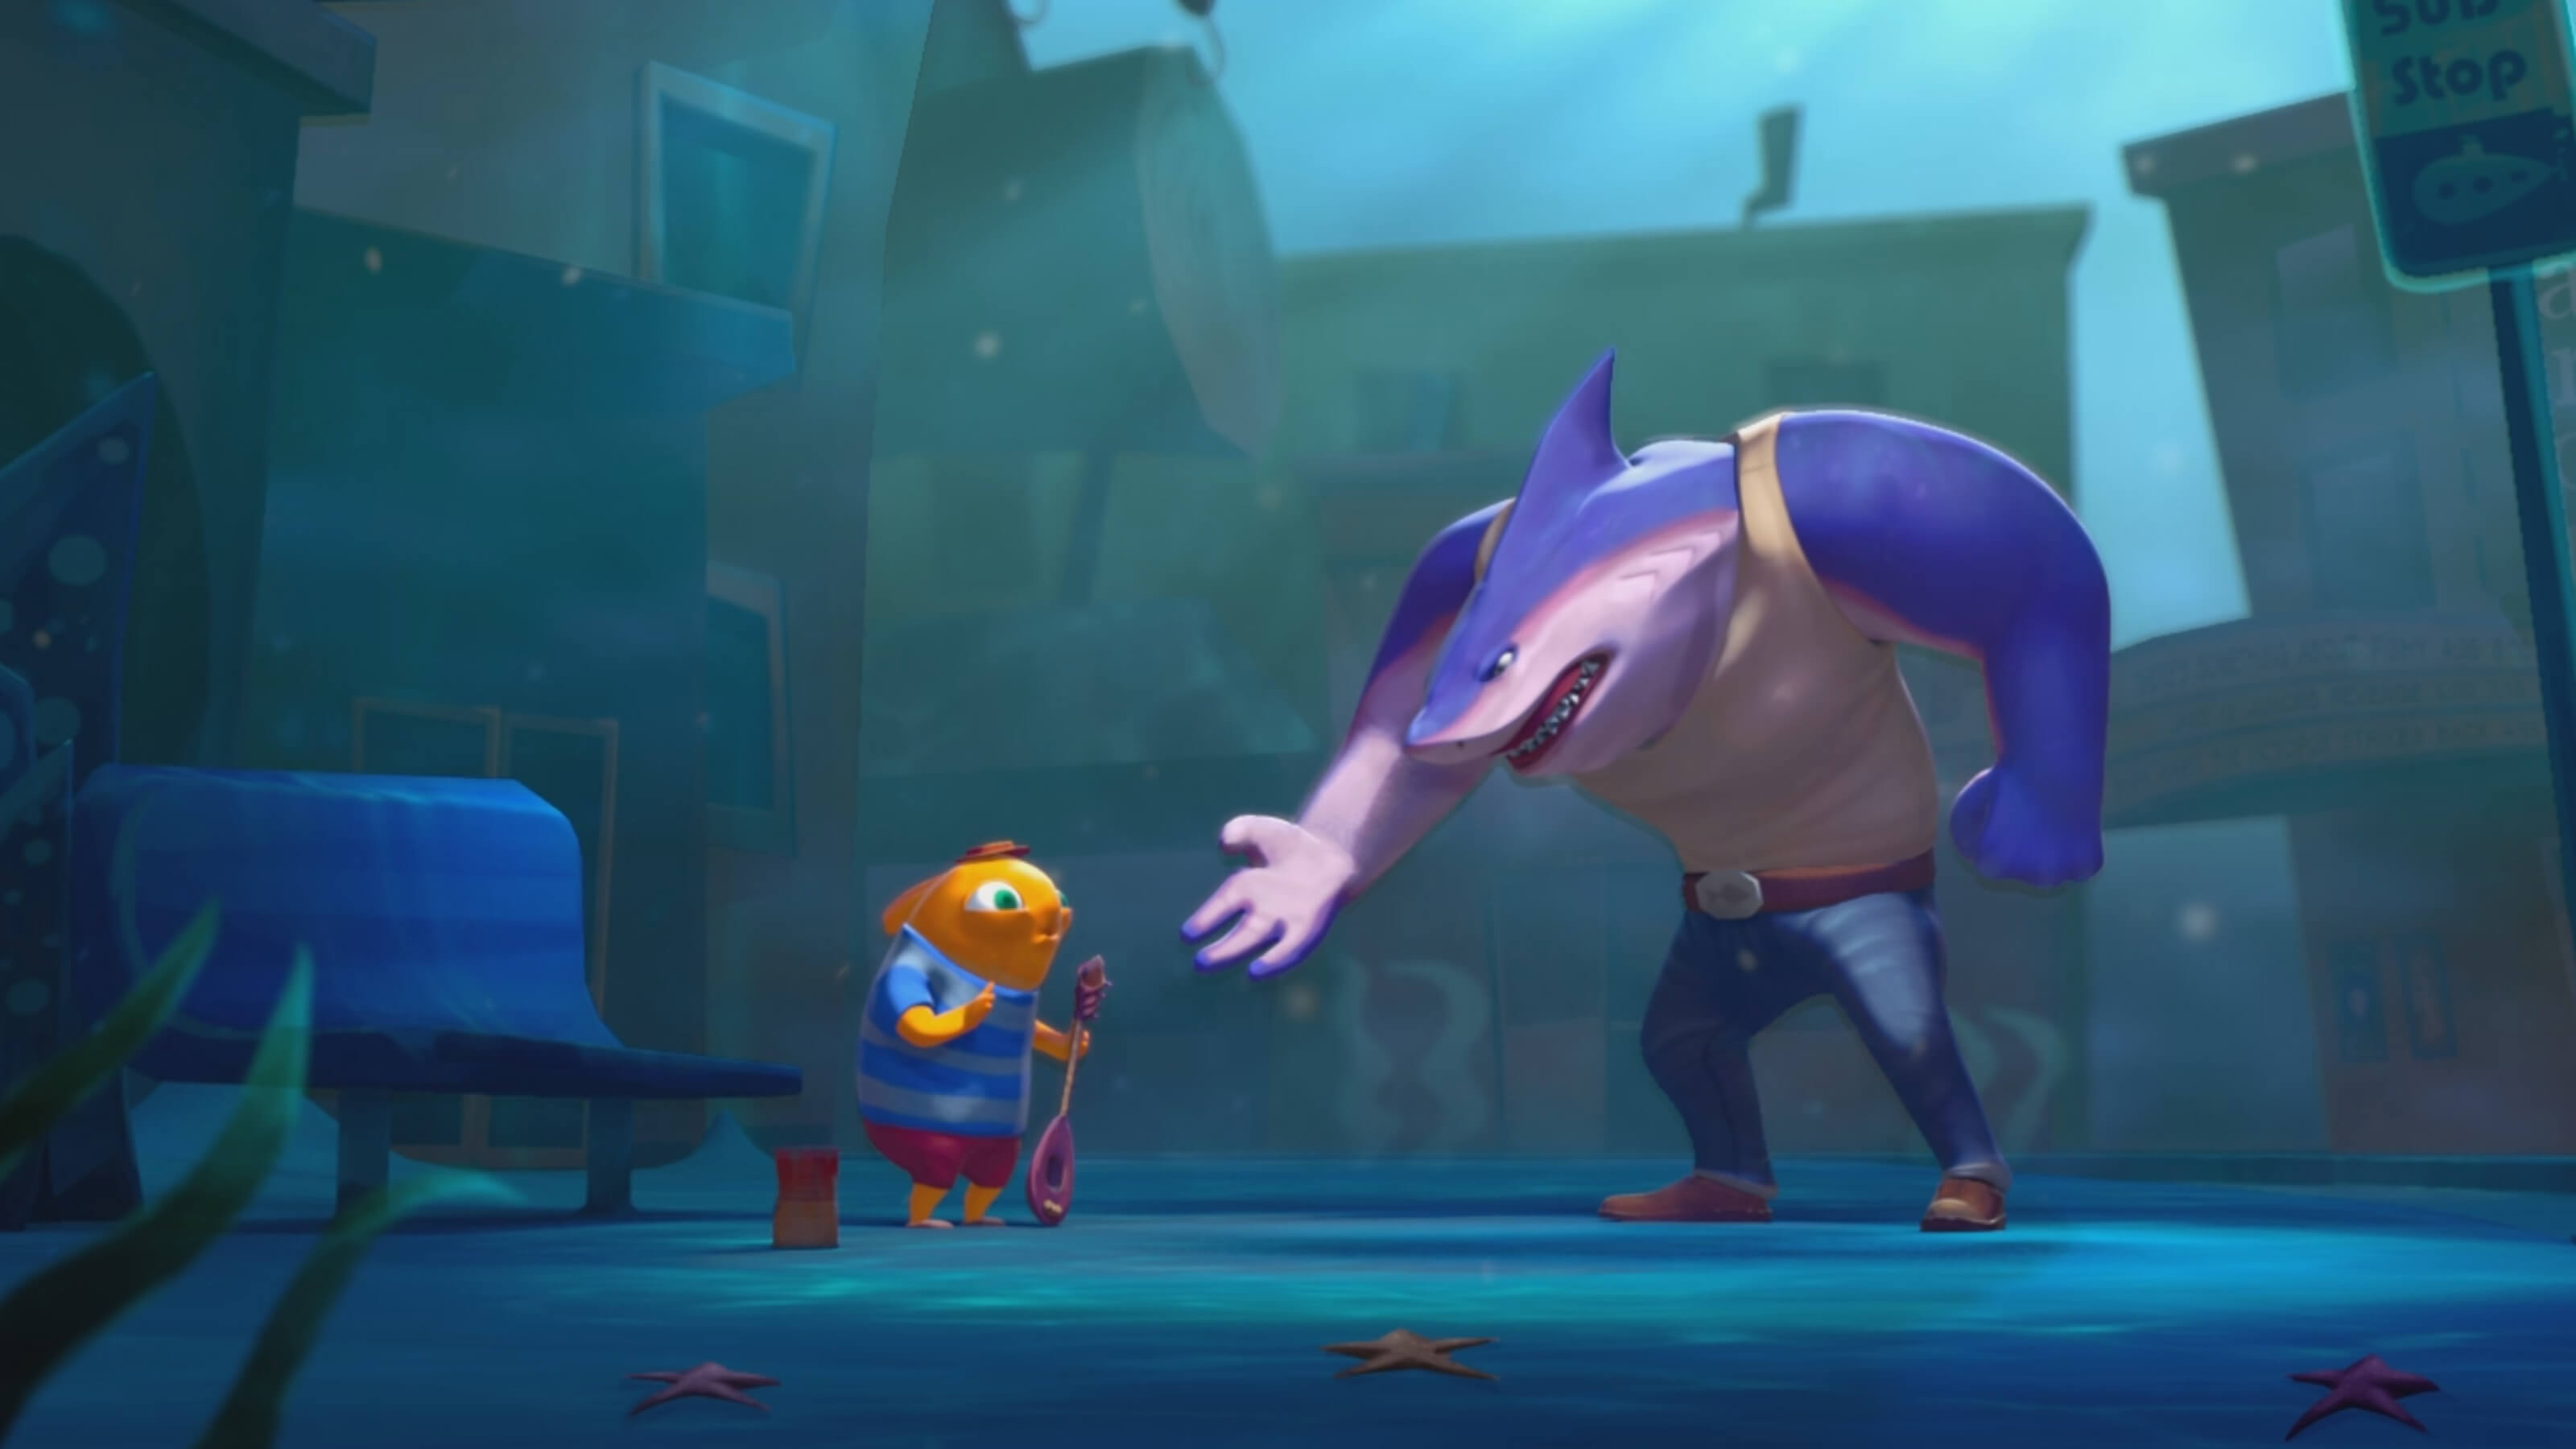 At a bus stop underwater, a large purple shark in jeans confronts a smaller orange fish in a striped t-shirt holding a banjo